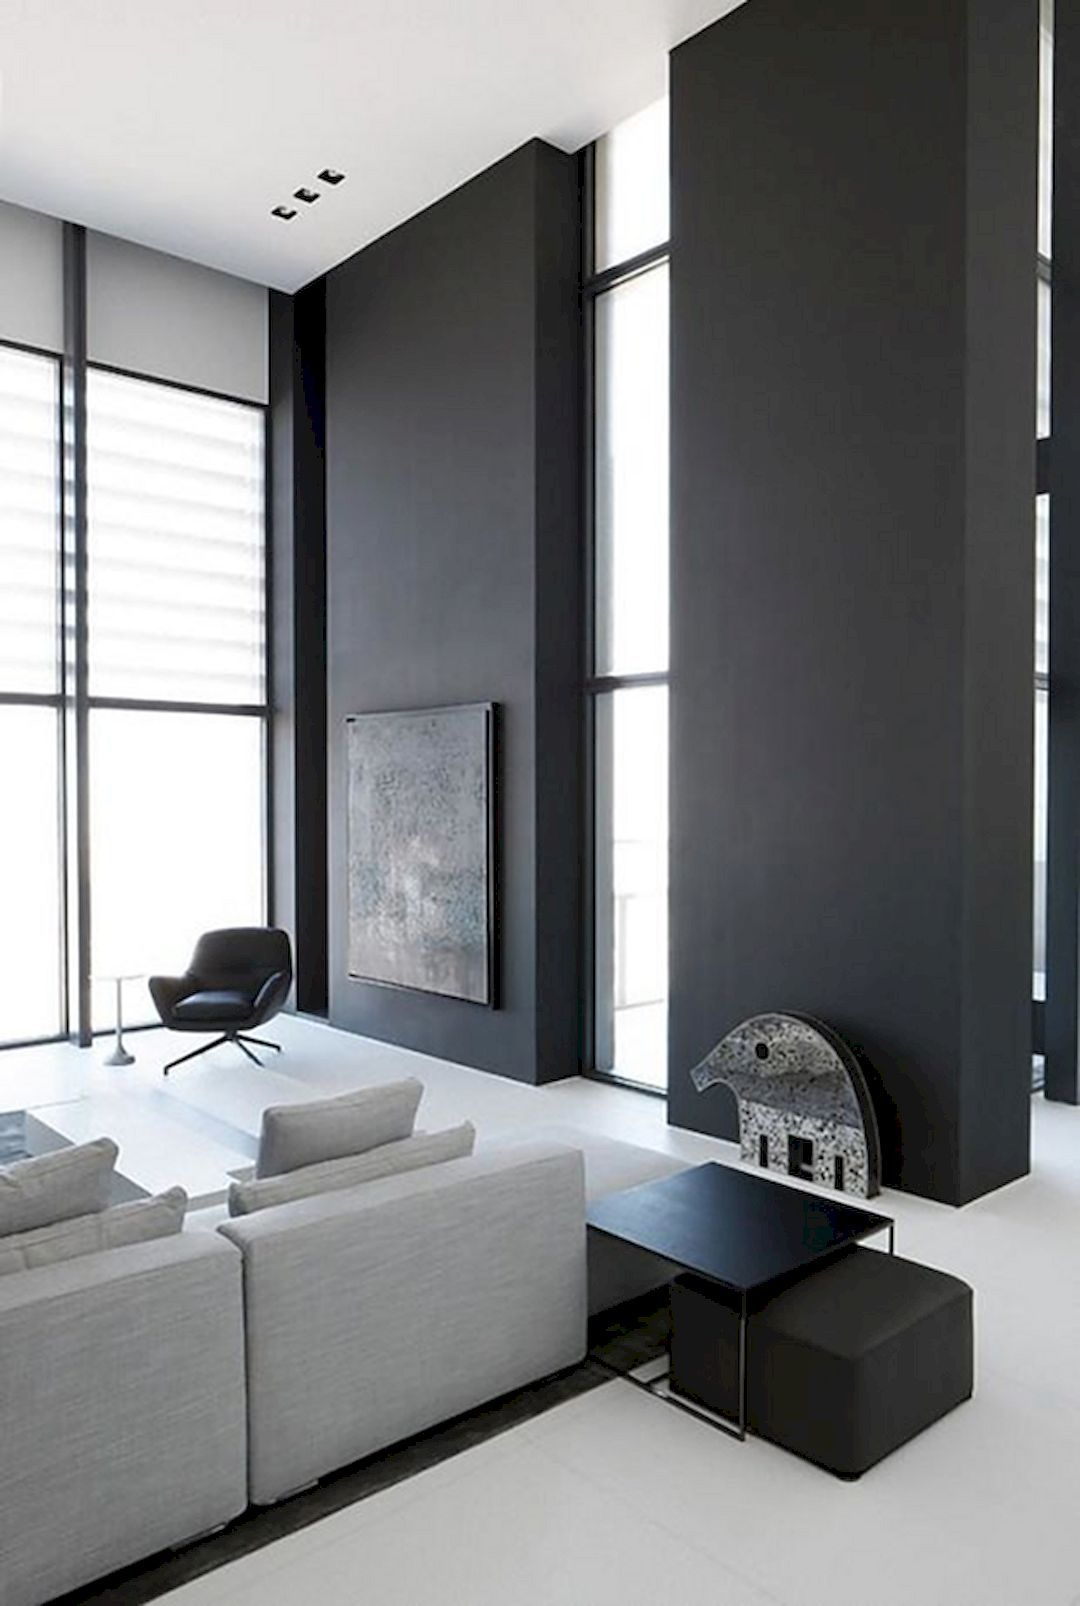 Charmant Elegant Interior Designs: 182 Monochrome Styles Collection  Https://www.futuristarchitecture.com/18044 Monochrome Interior.html